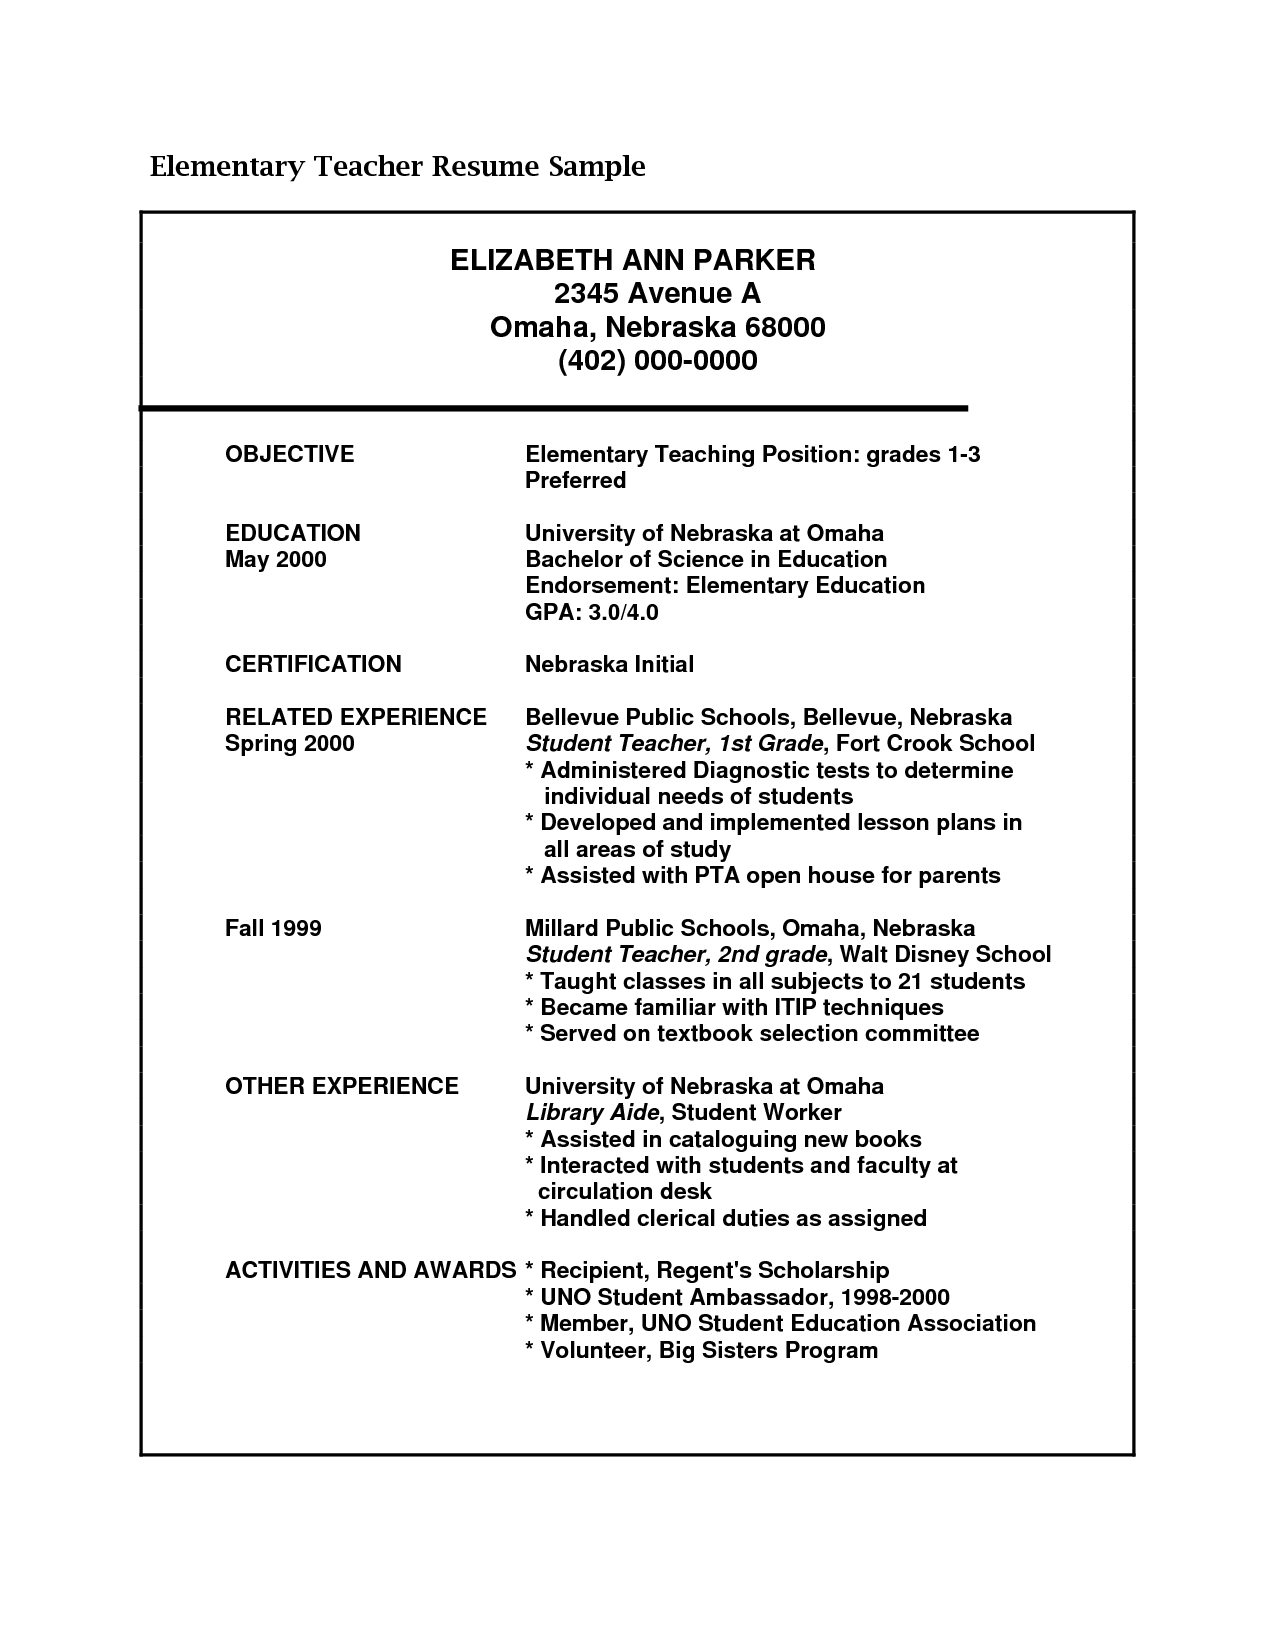 Resume Sample For Teacher Elementary School Throughout Teaching 8